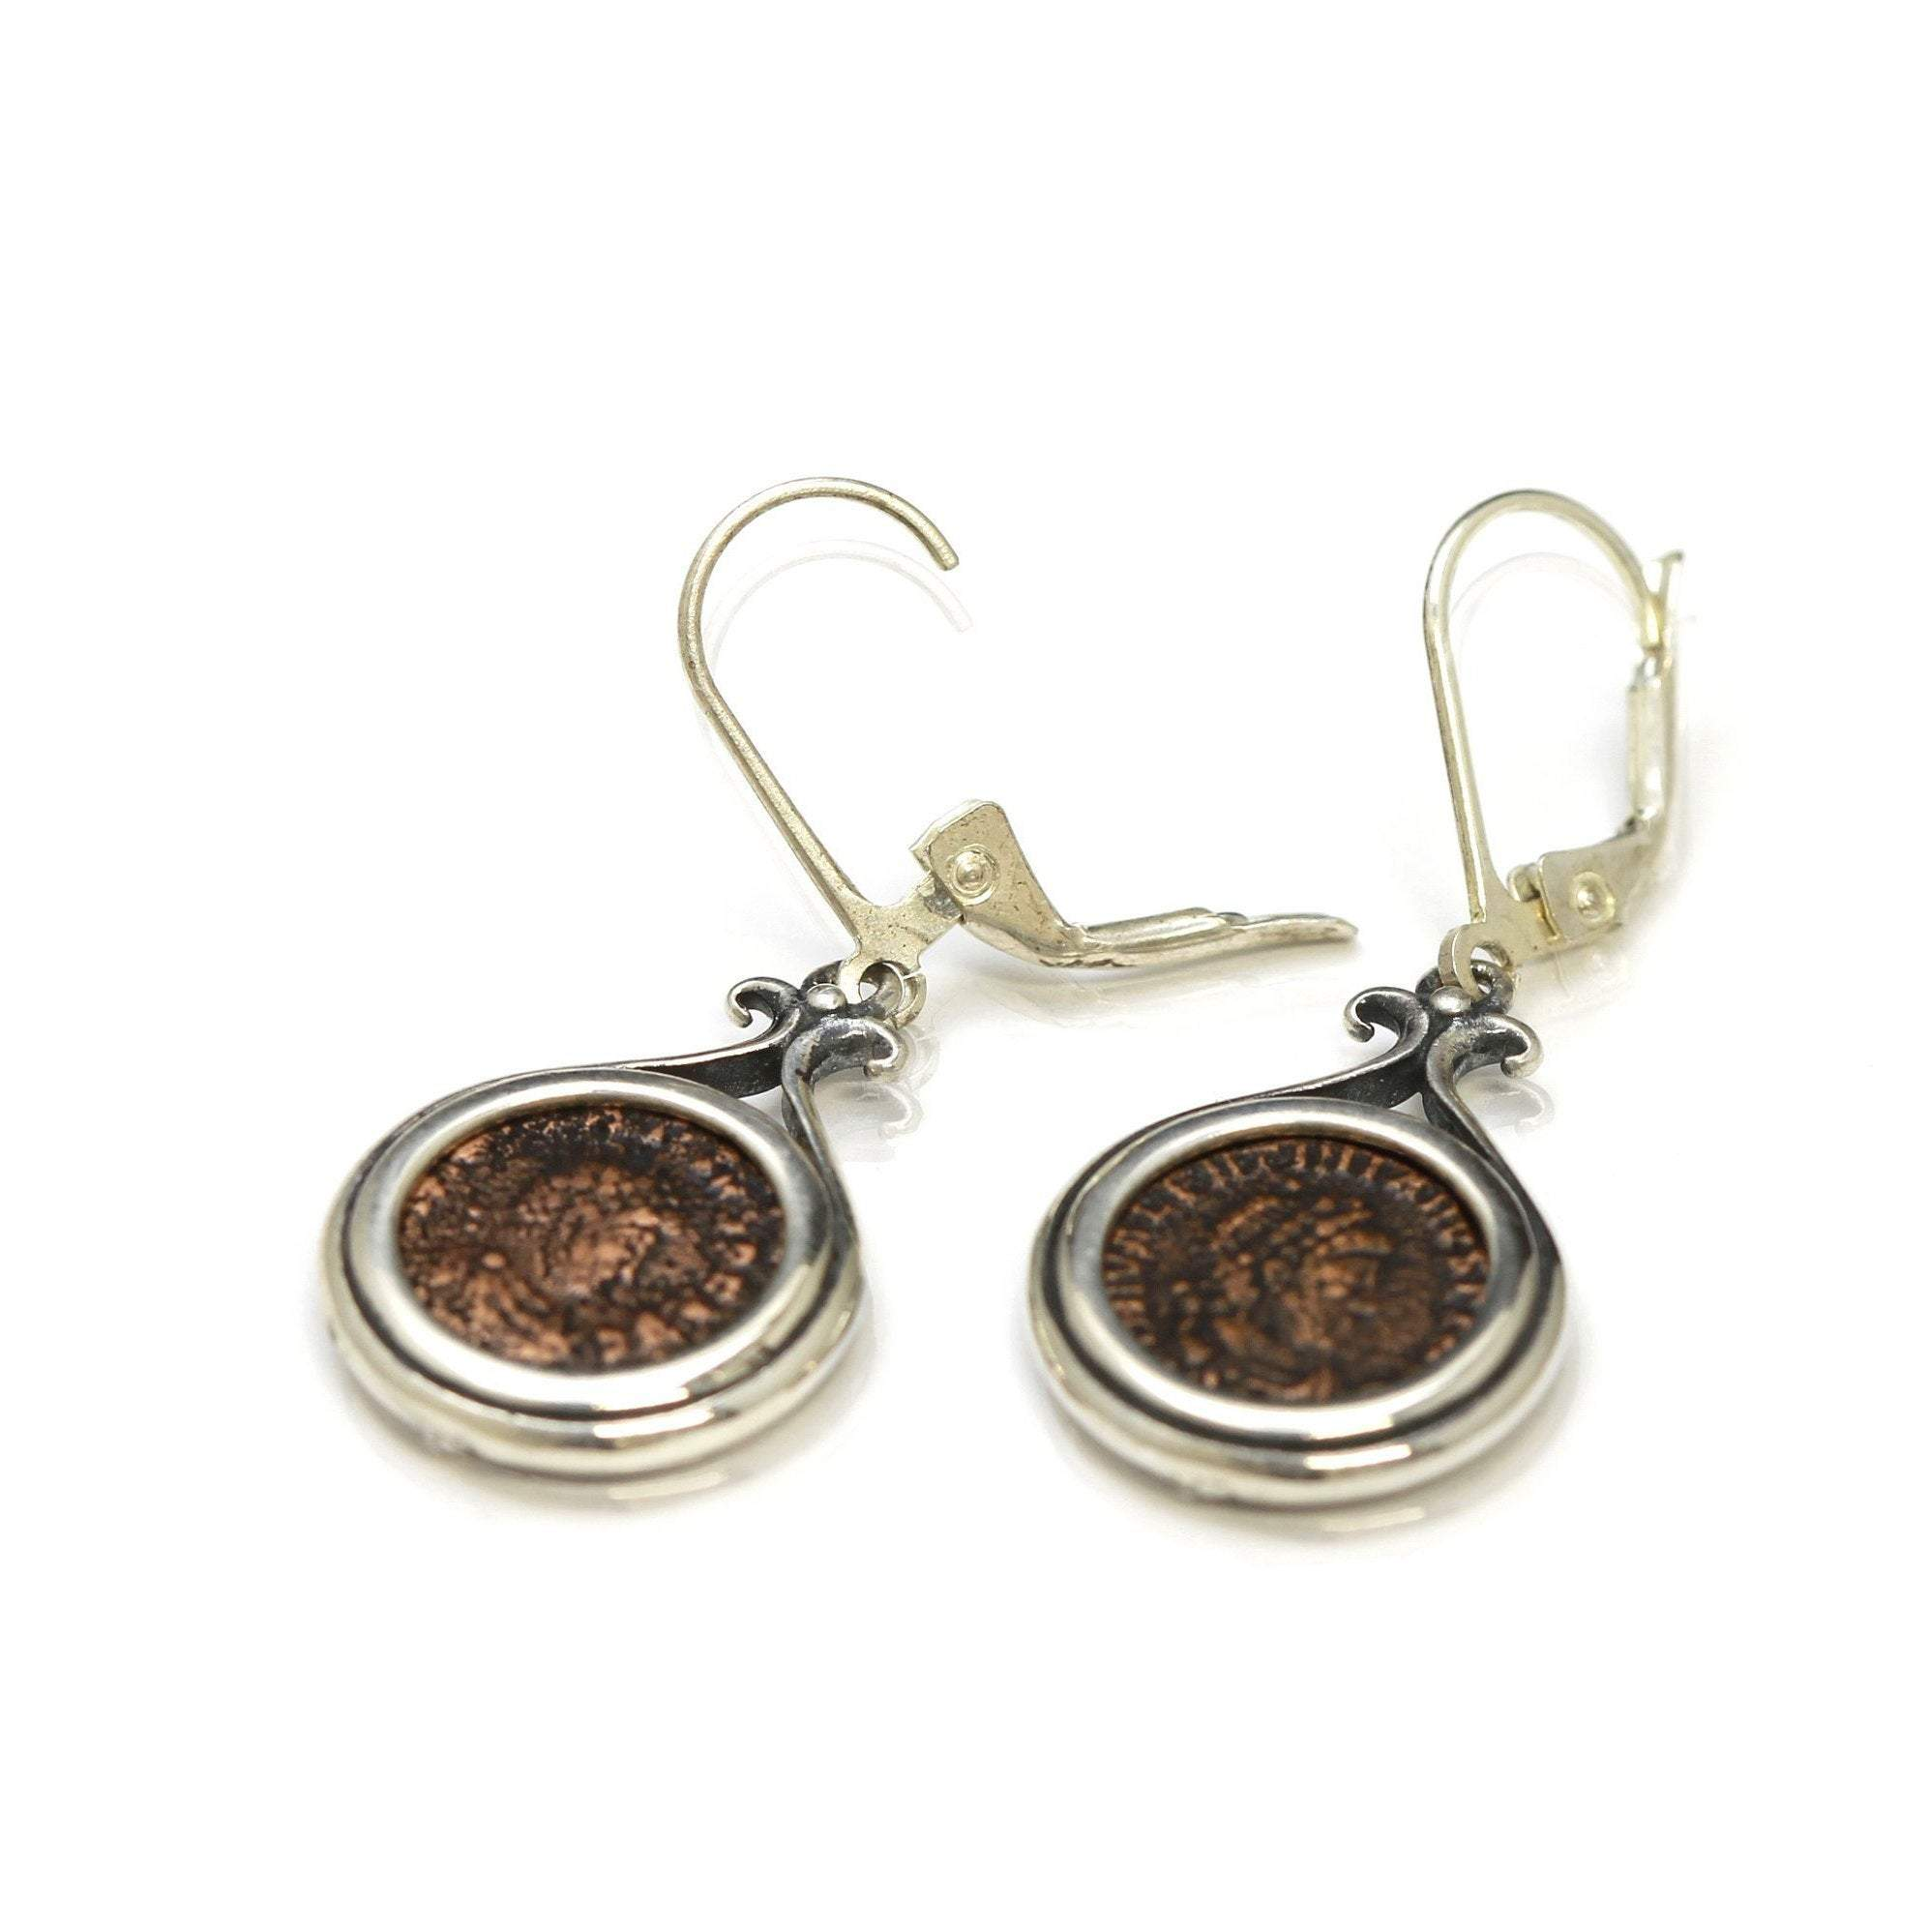 Roman Coin Silver Earrings, Genuine Ancient Coins, with Certificate 2059 - Erez Ancient Coin Jewelry, ancient coin jewelry, men jewelry, genuine ancient coins, made in the US